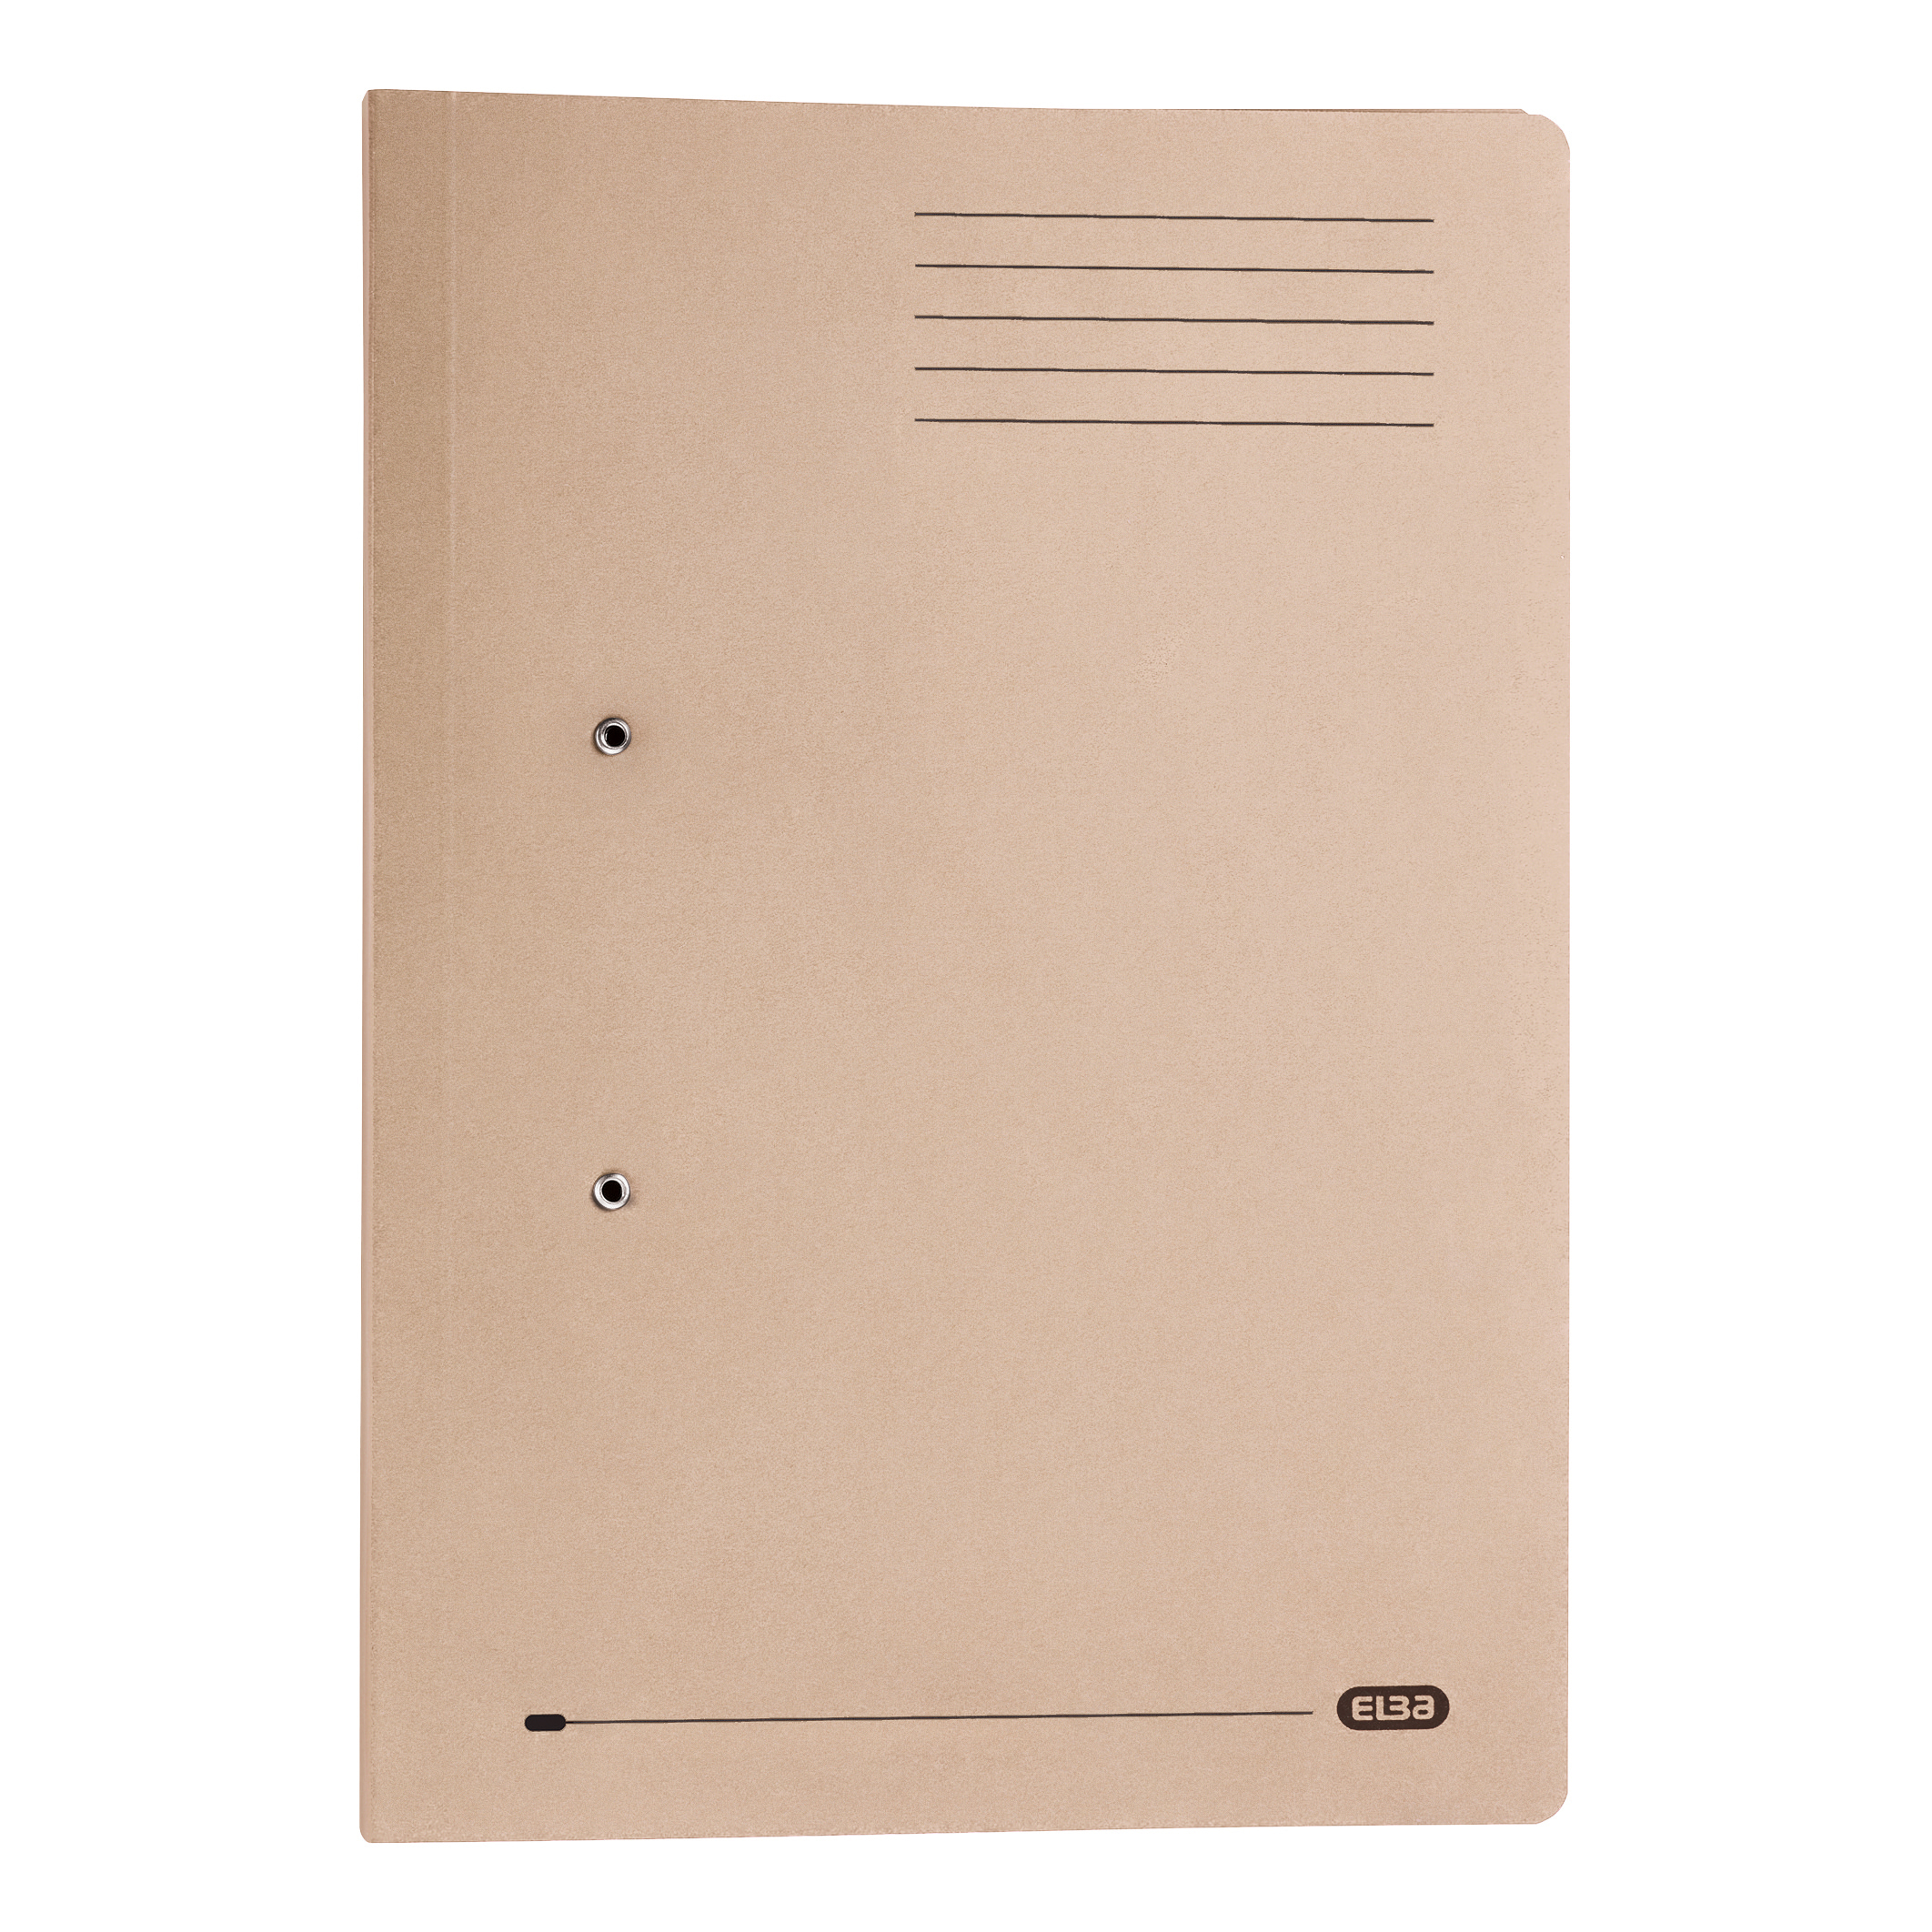 Elba StrongLine Transfer Spring File Recycled 320gsm Foolscap Buff Ref 100090145 [Pack 25] [REDEMPTION]